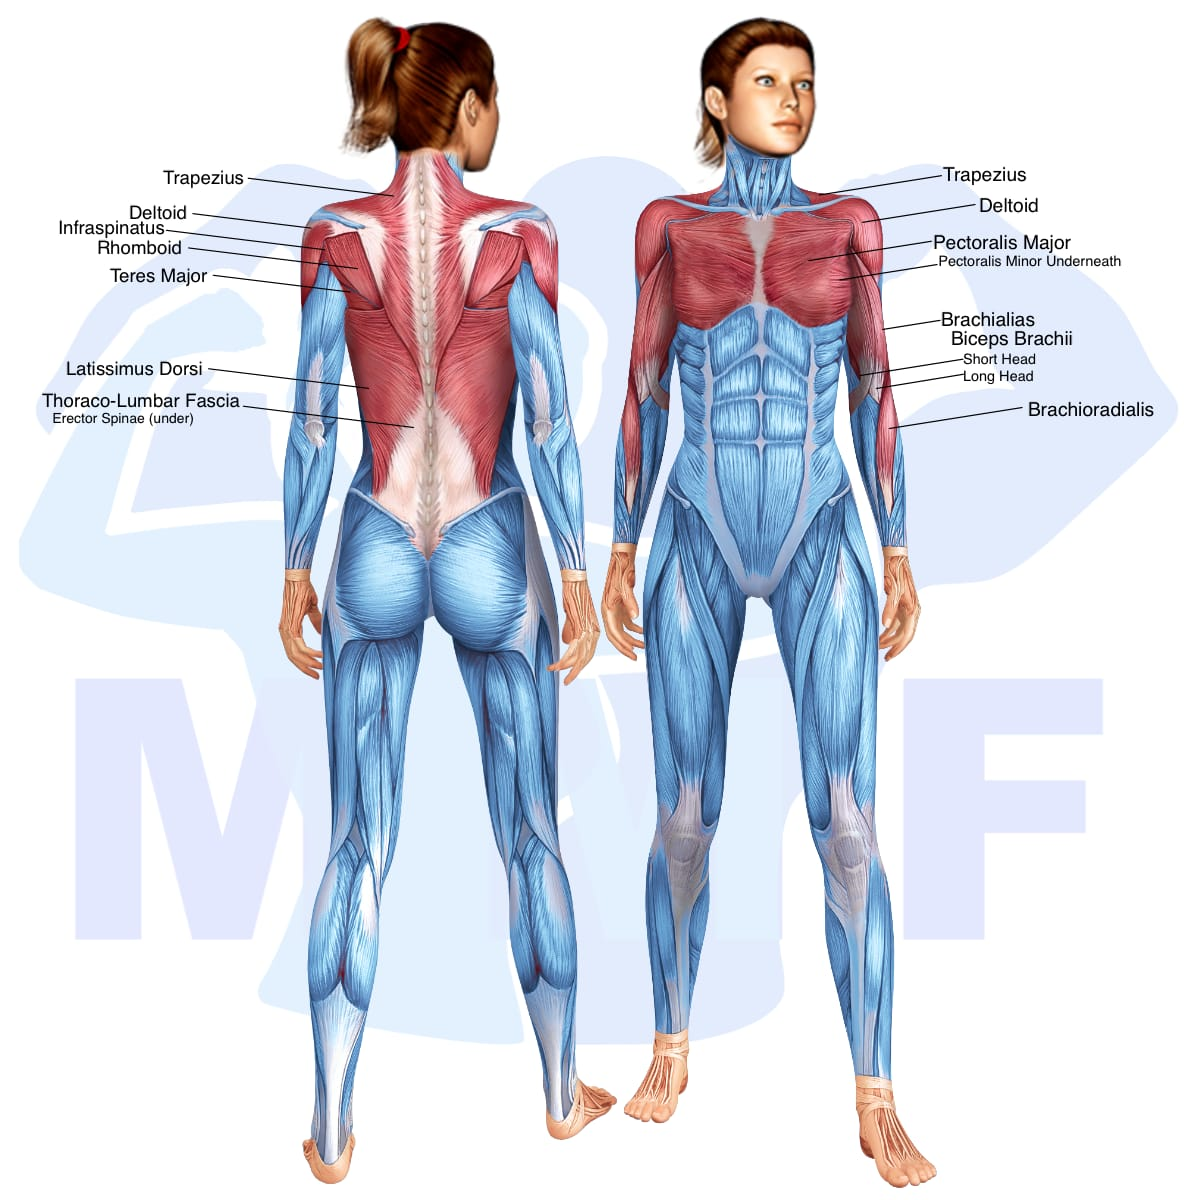 Skeletal muscle systems for a muscular woman, with muscles highlighted in red that are use during resistance band seated rows.